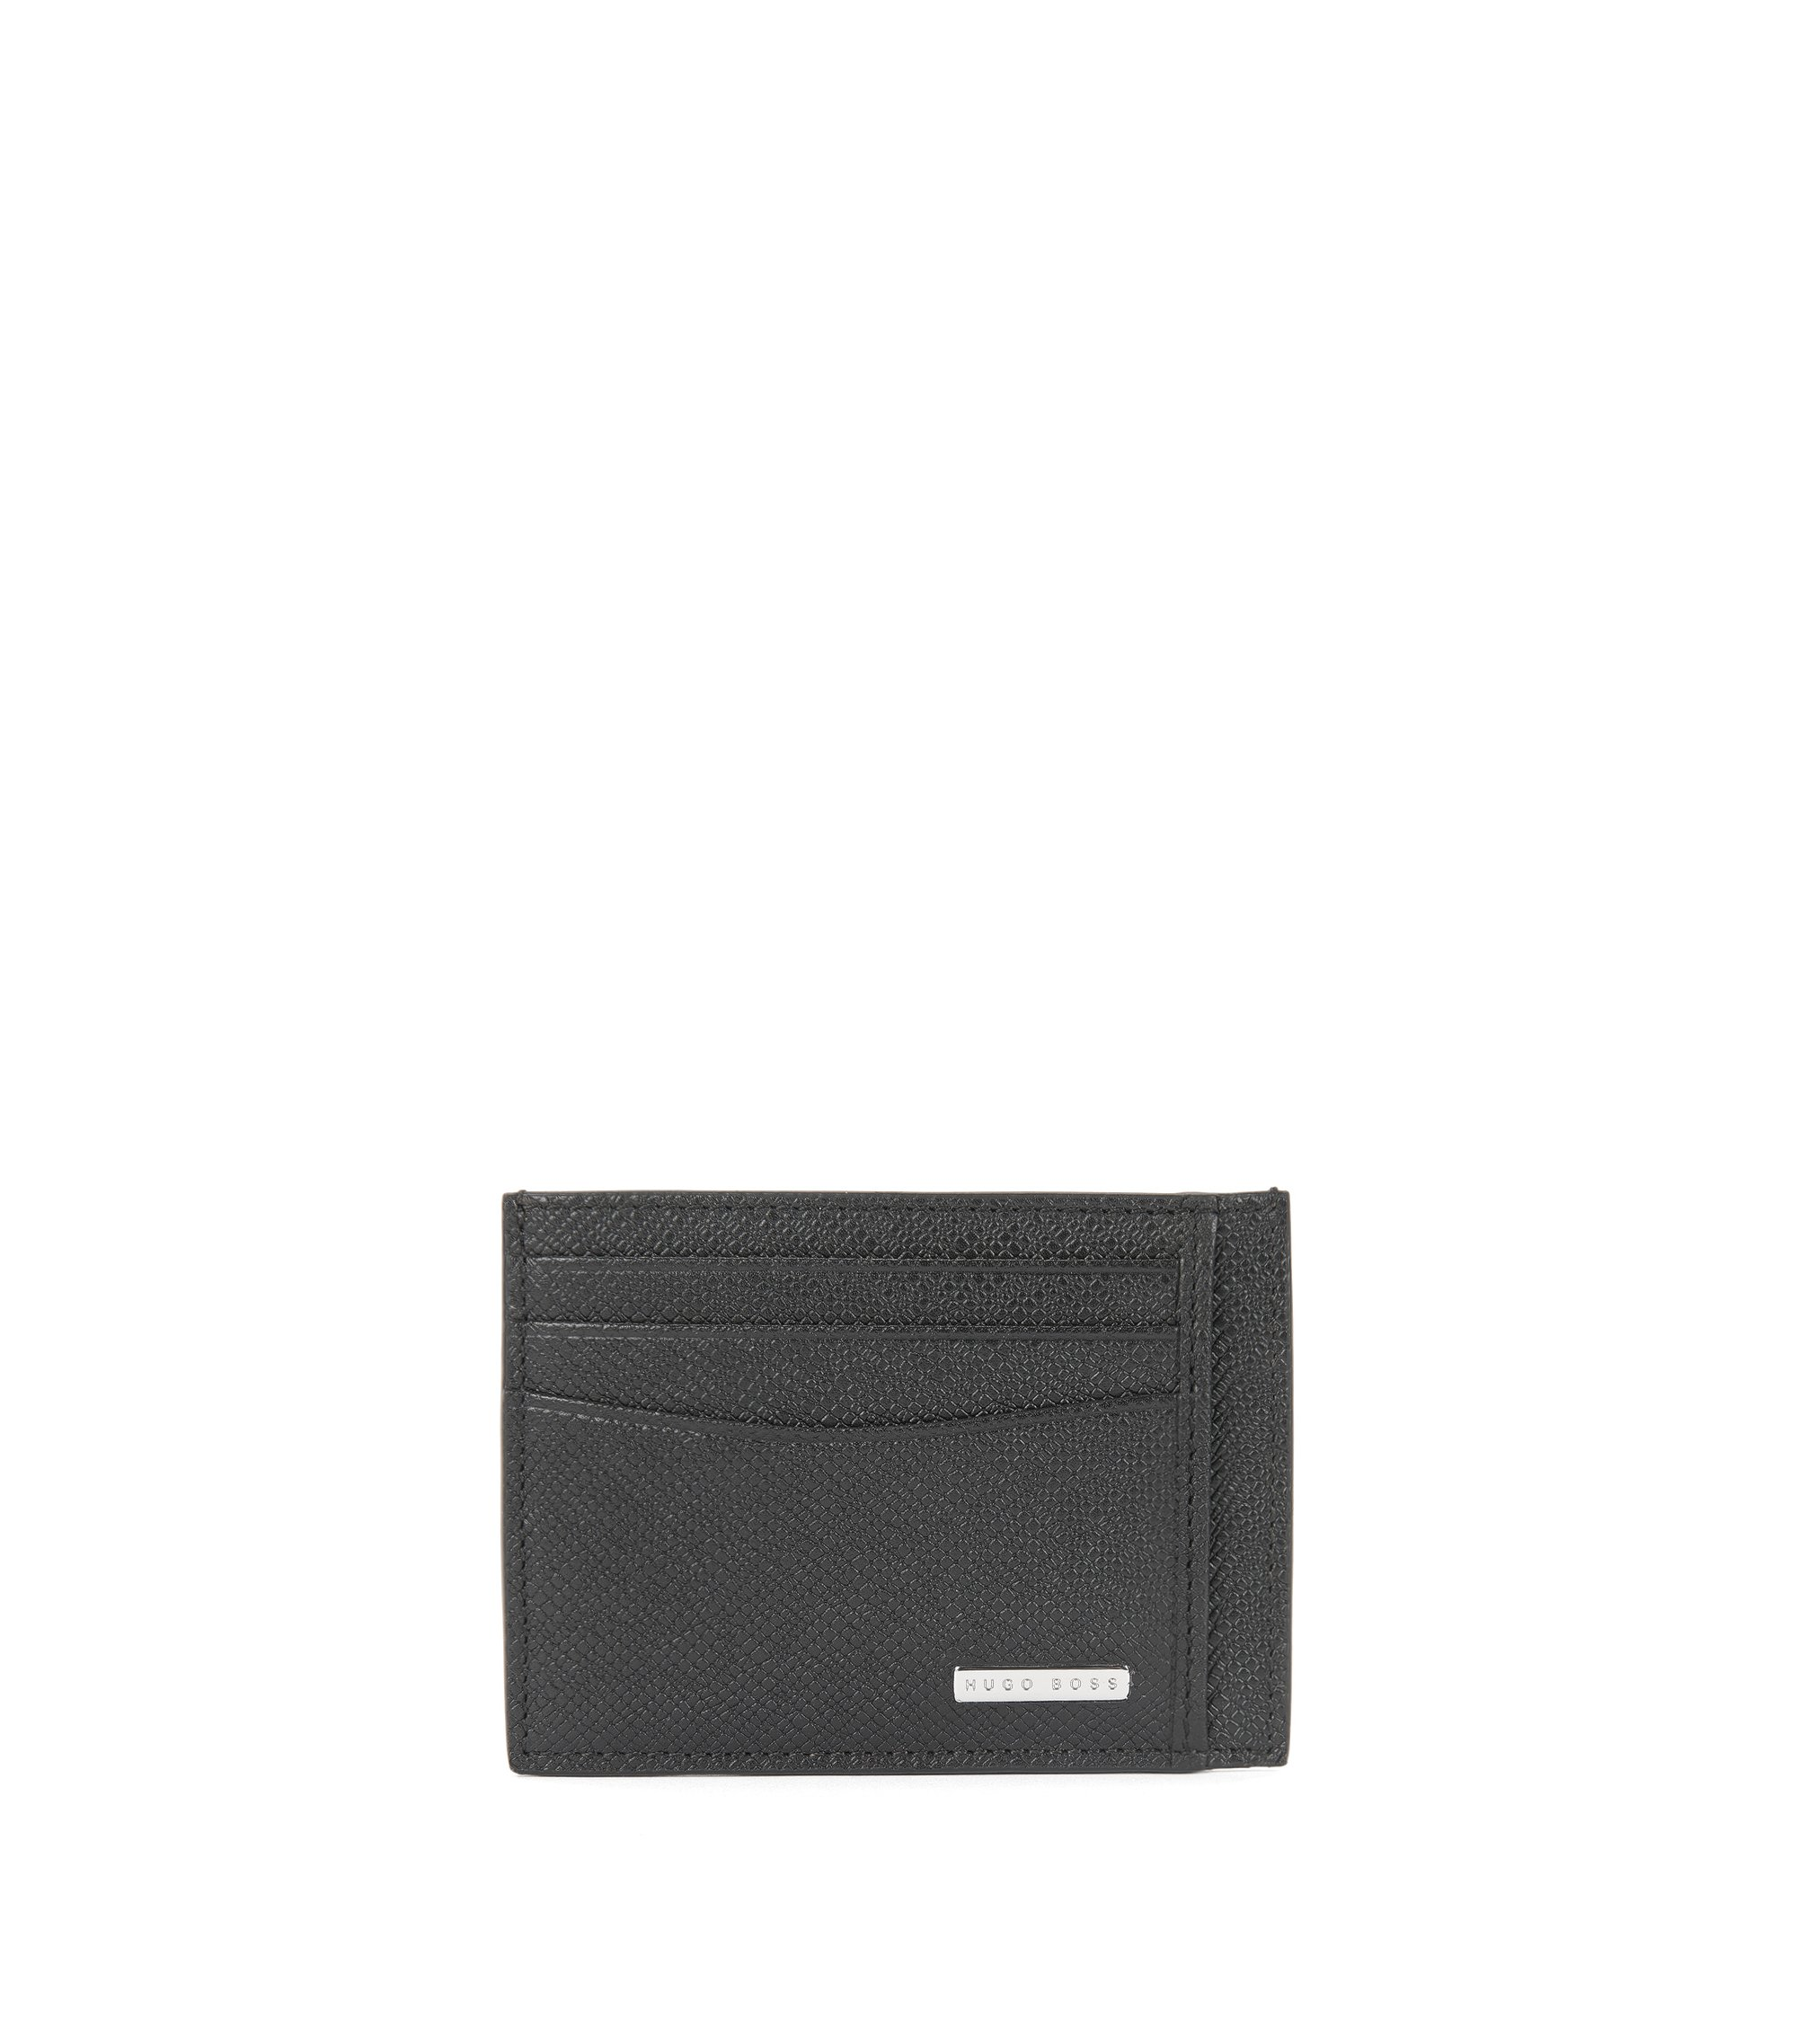 Signature Collection card holder in palmellato leather, Black